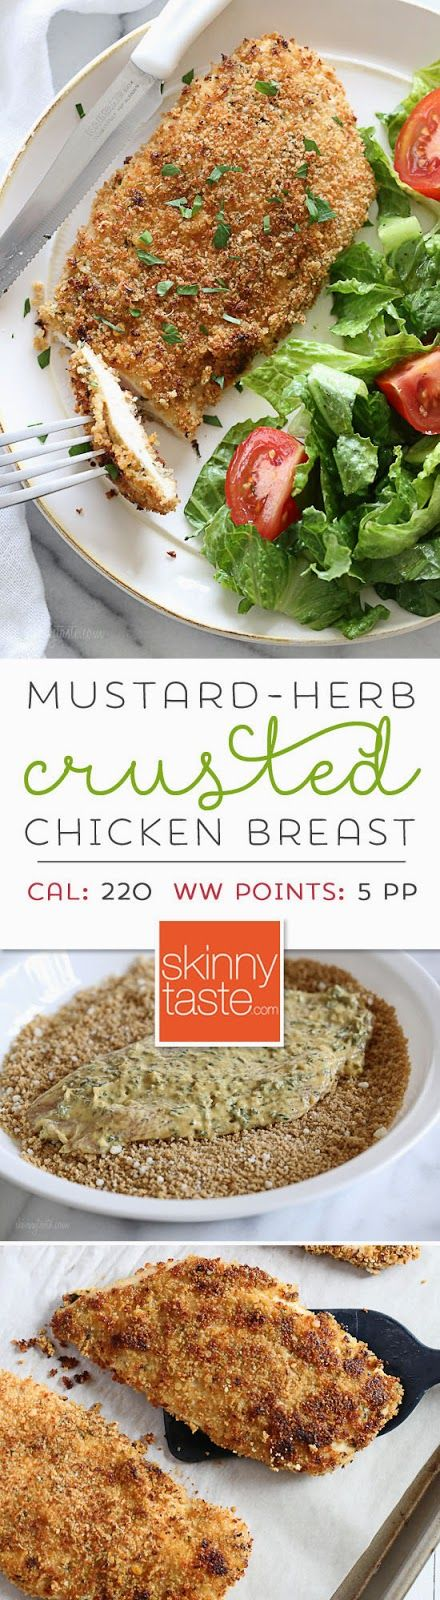 Mustard Herb Crusted Chicken Breasts - crunchy, flavorful and SO delicious!